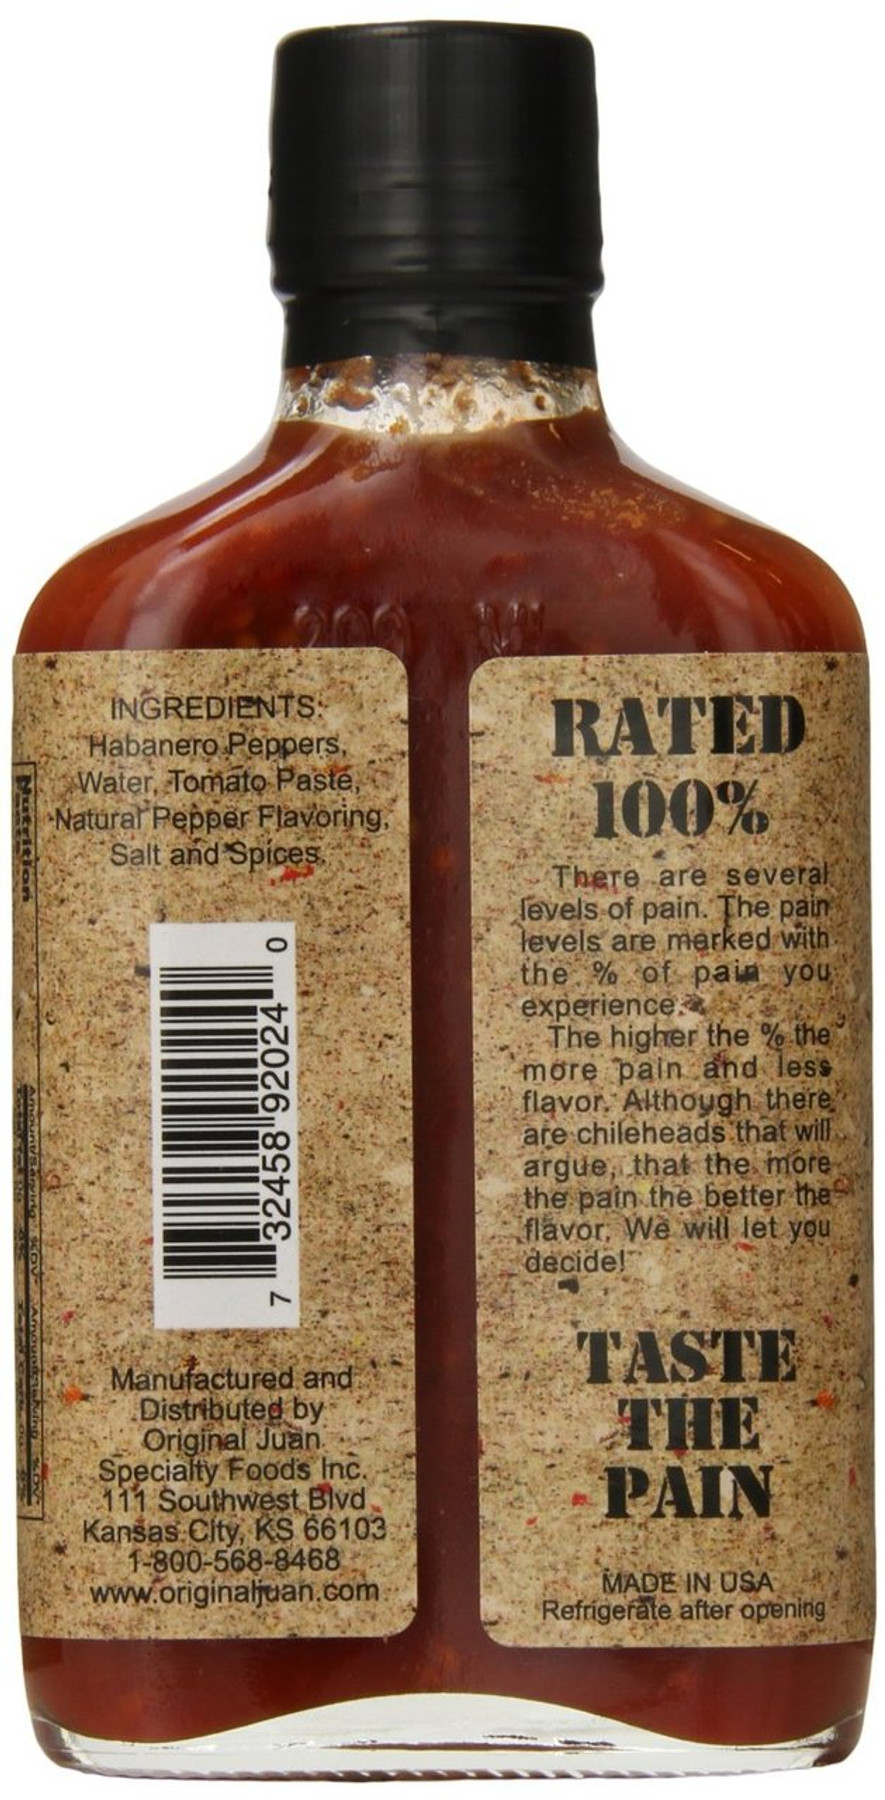 PAIN 100% Hot Sauce - buy at Pepper Explosion